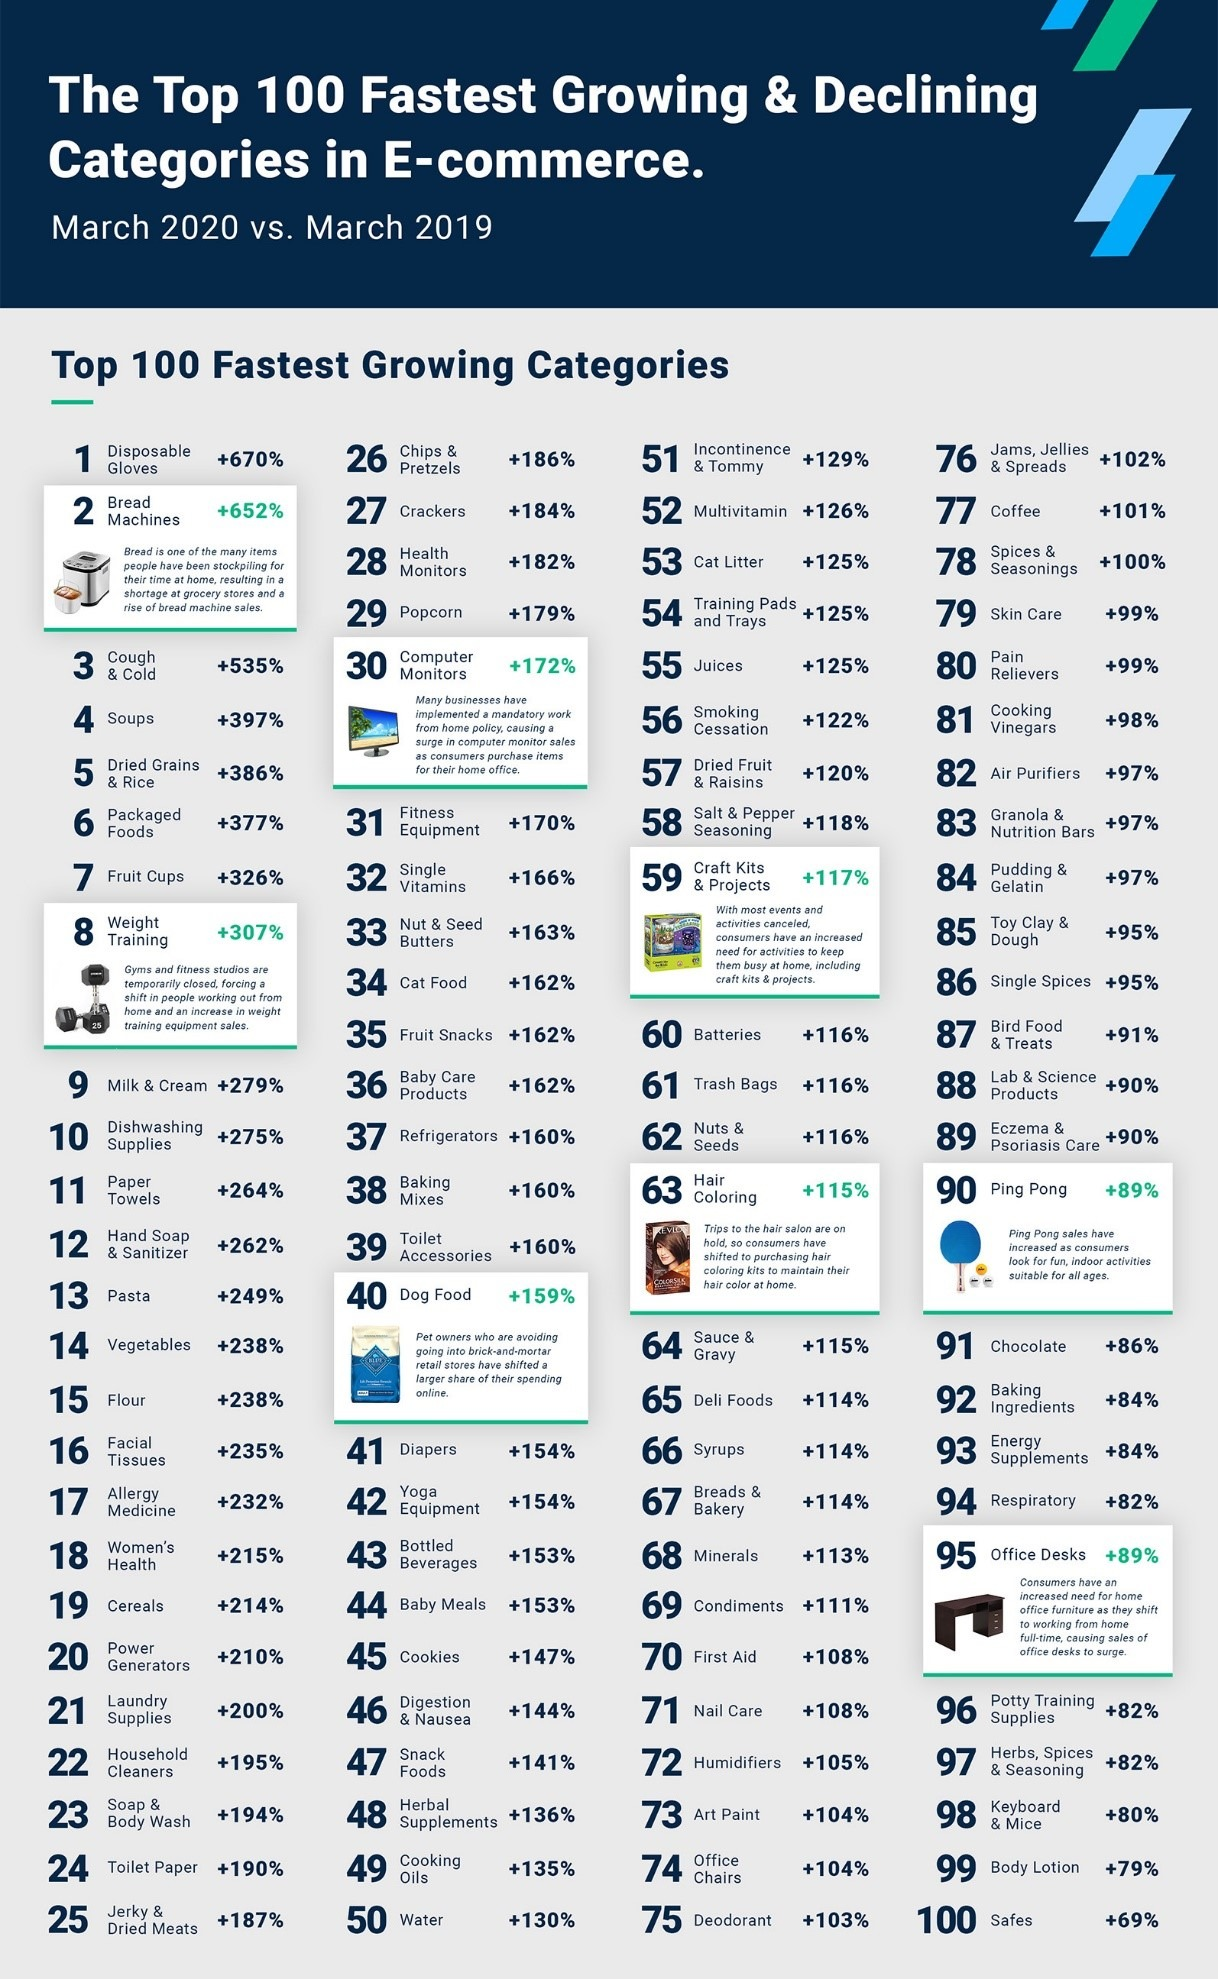 Top 100 Fastest Growing Categories in eCommerce